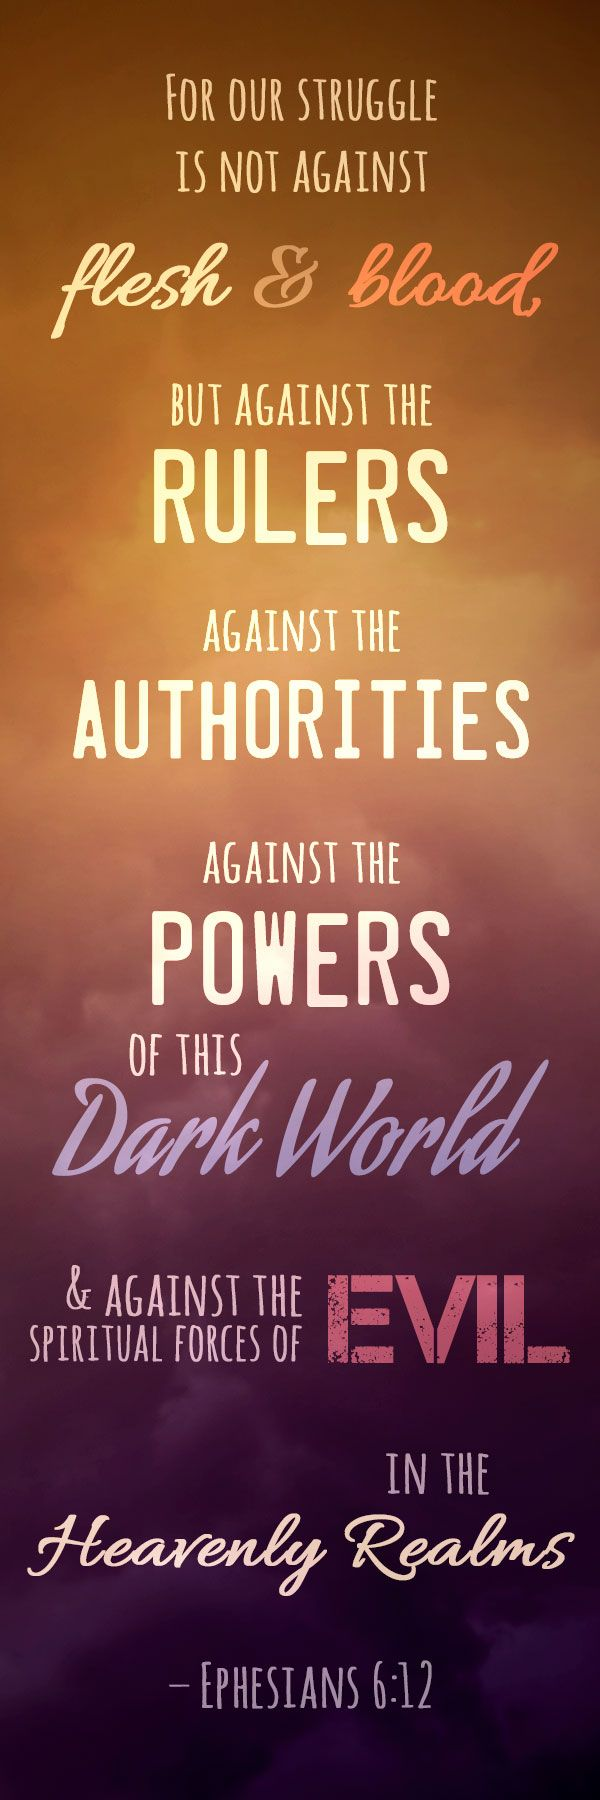 """For our struggle is not against flesh and blood, but against the rulers, against the authorities, against the powers of this dark world and against the spiritual forces of evil in the heavenly realms."" – Ephesians 6:12 ACLJ.org"